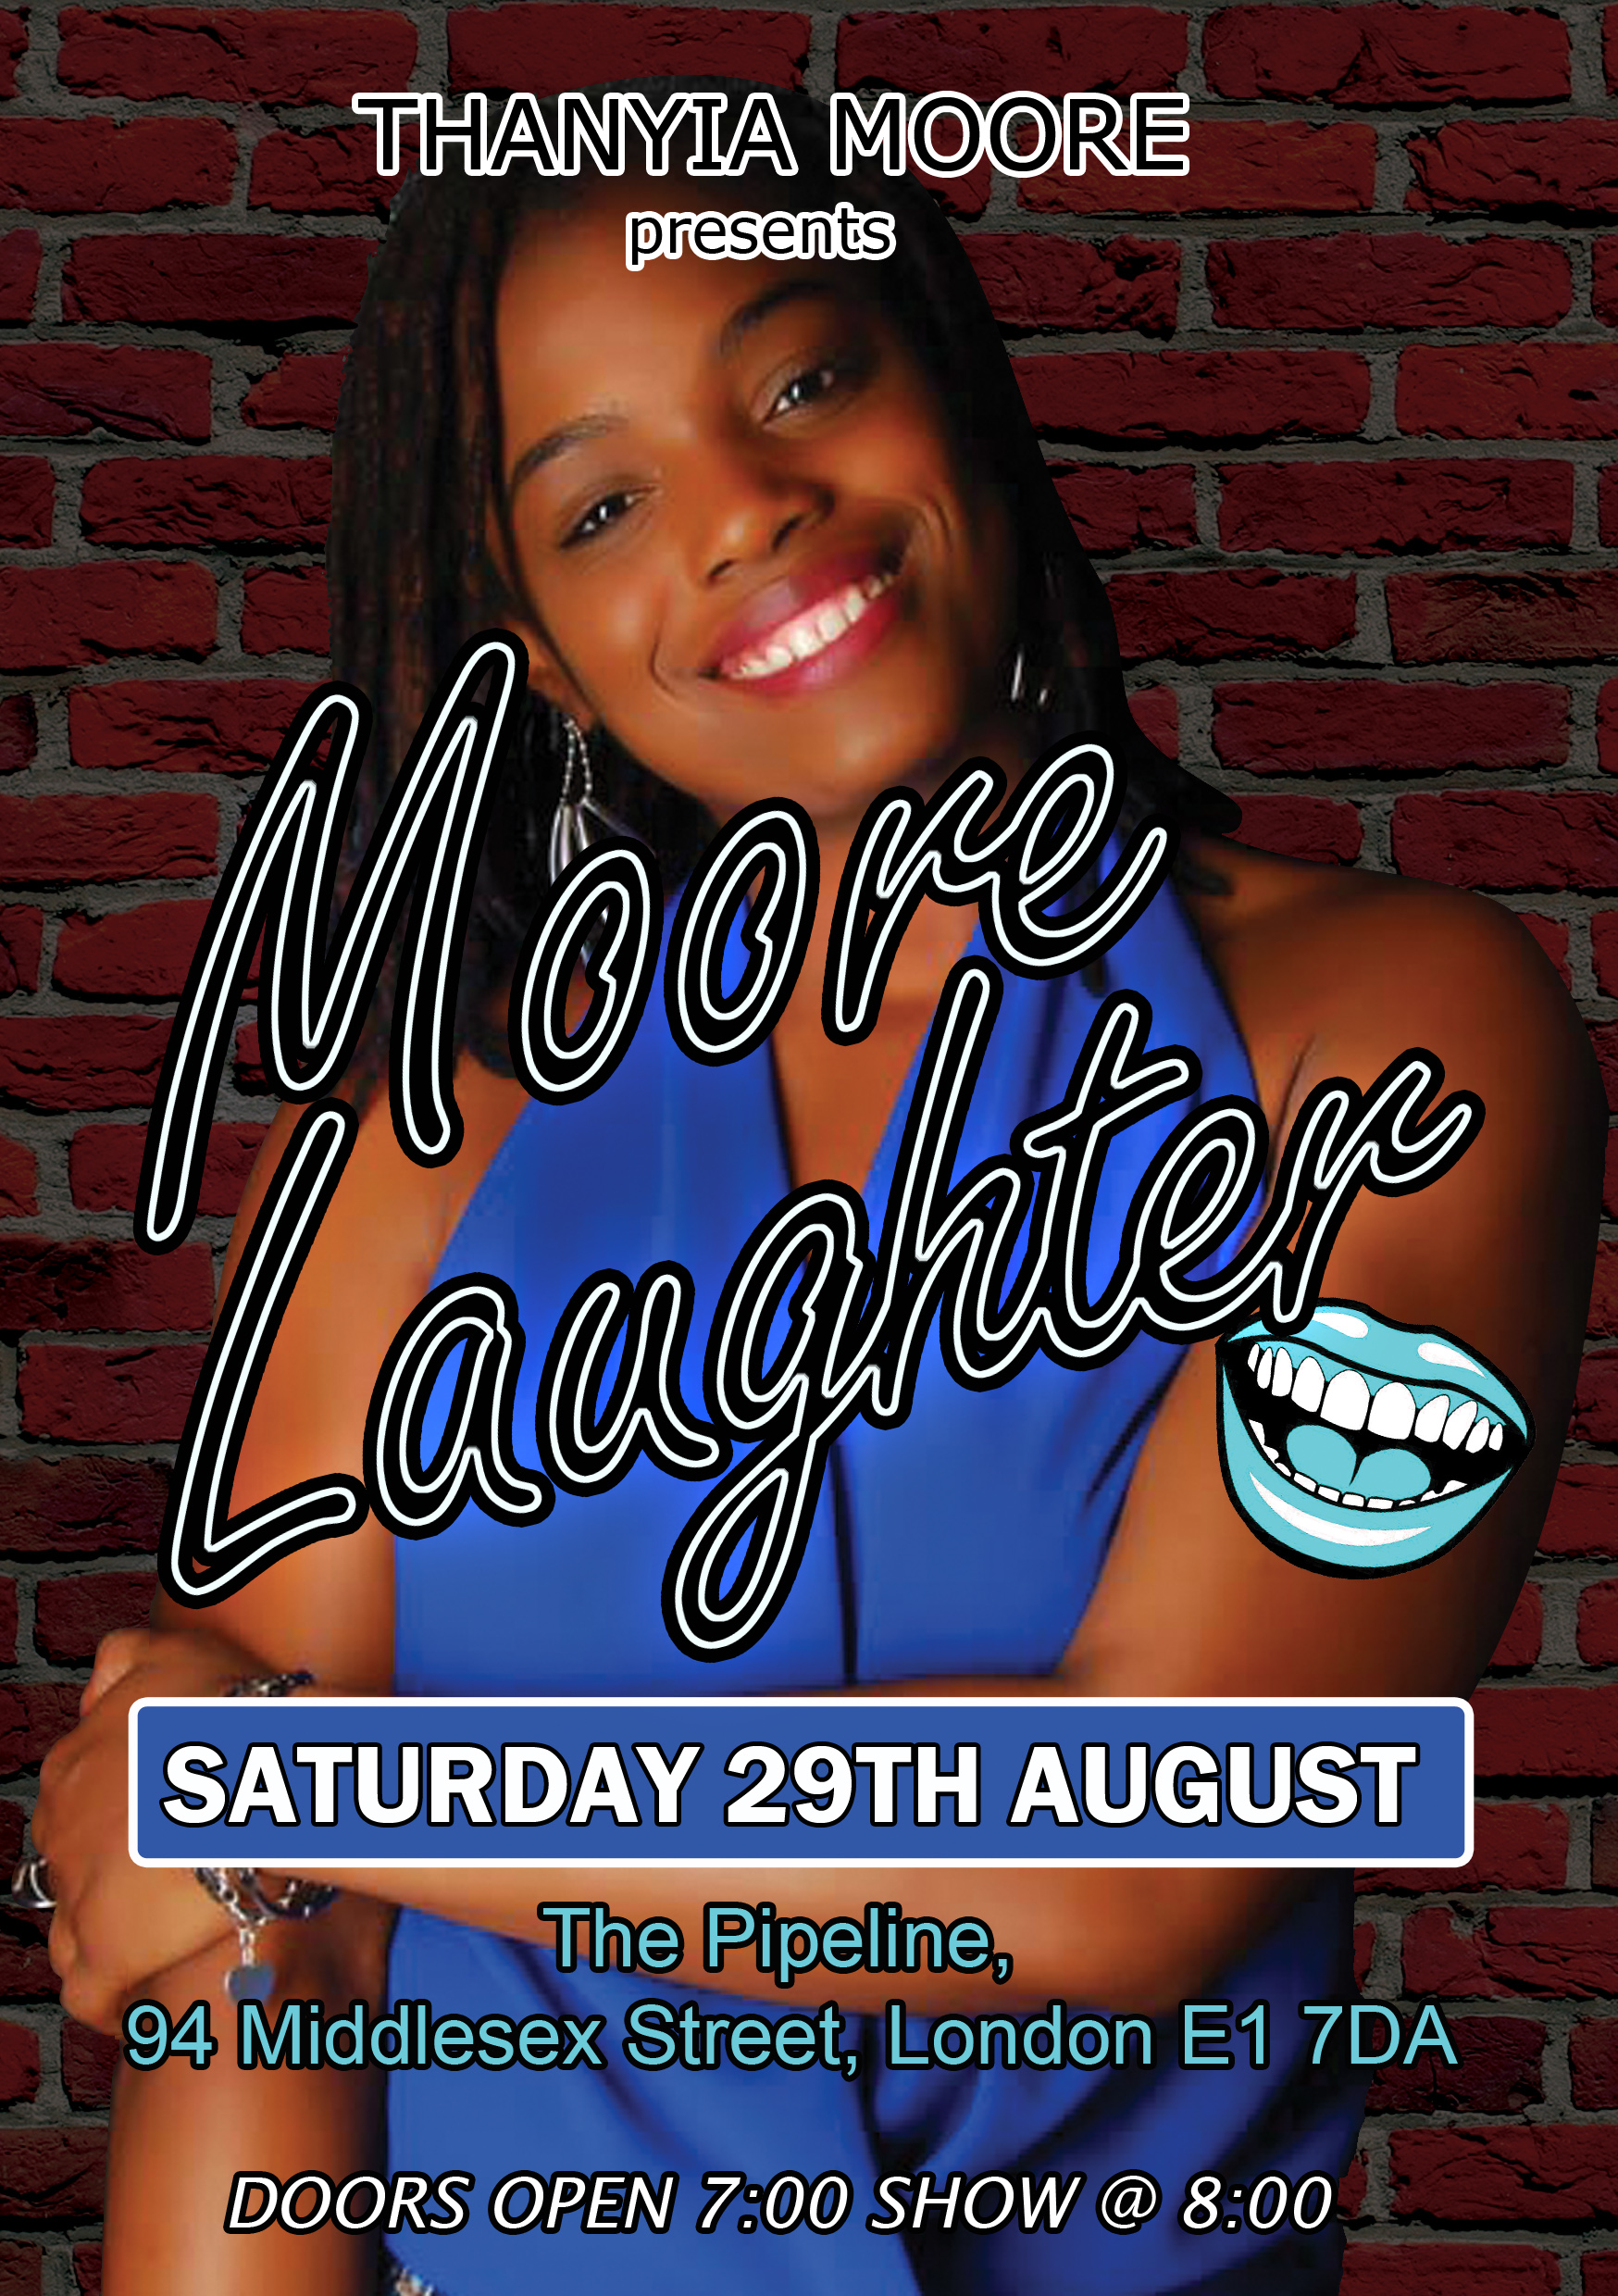 Moore Laughter